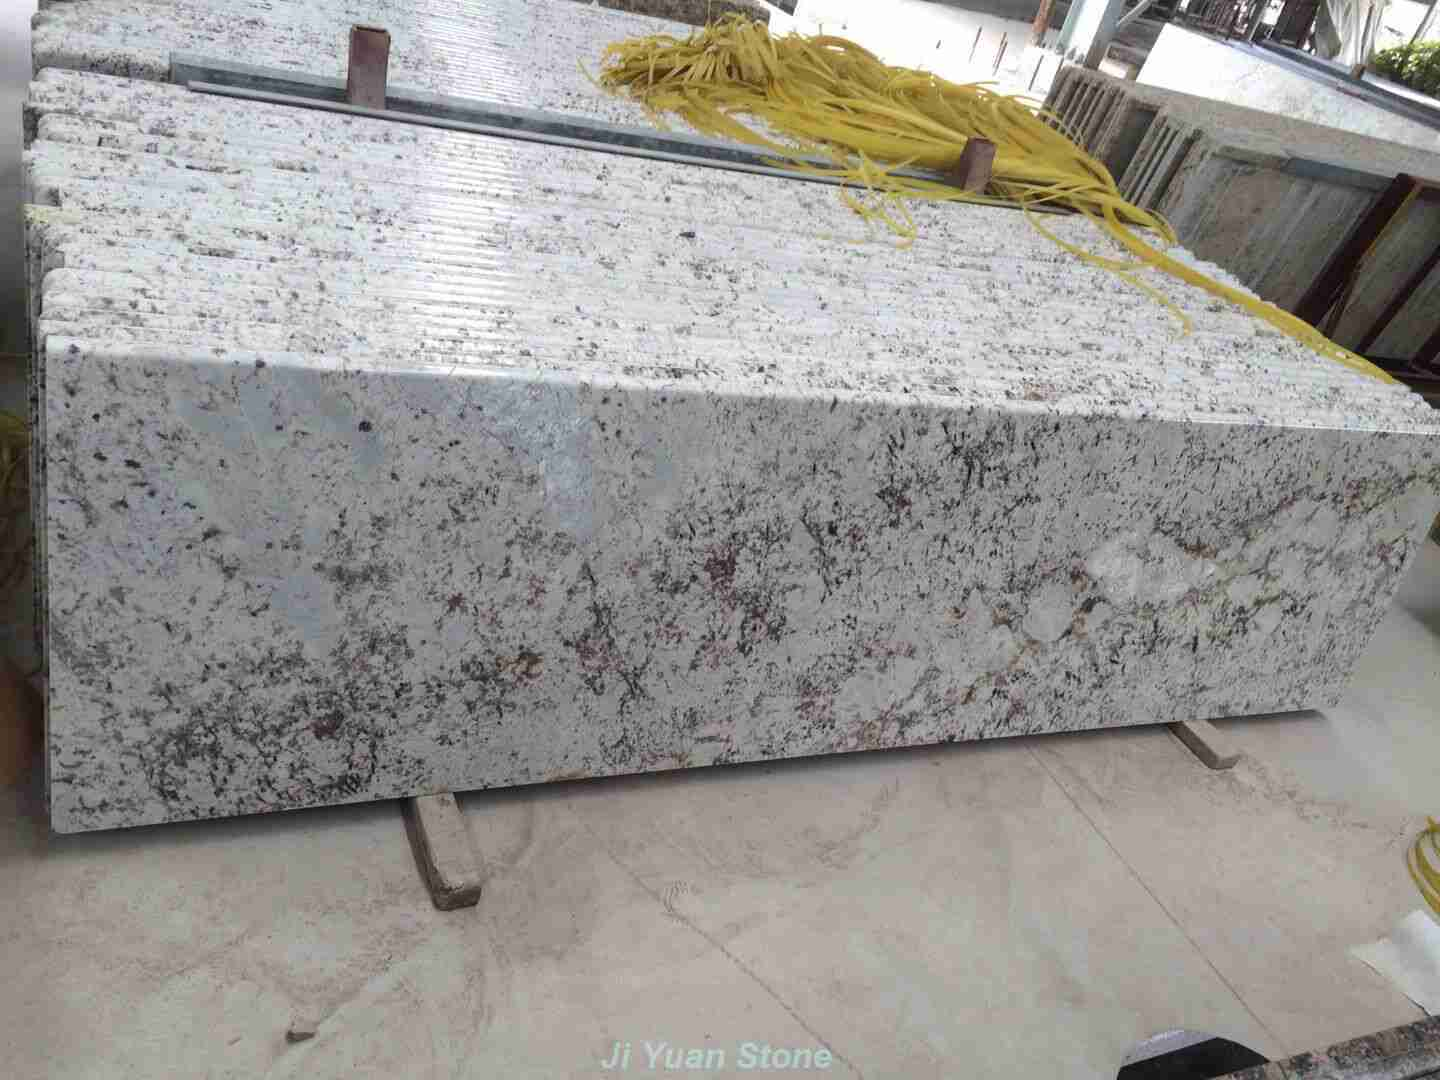 White Galaxy Granite Moon White Granite White Marble Tiles Thunder White Granite Delicatus White Granite White Ice Granite White Springs Granite Colonial White Granite